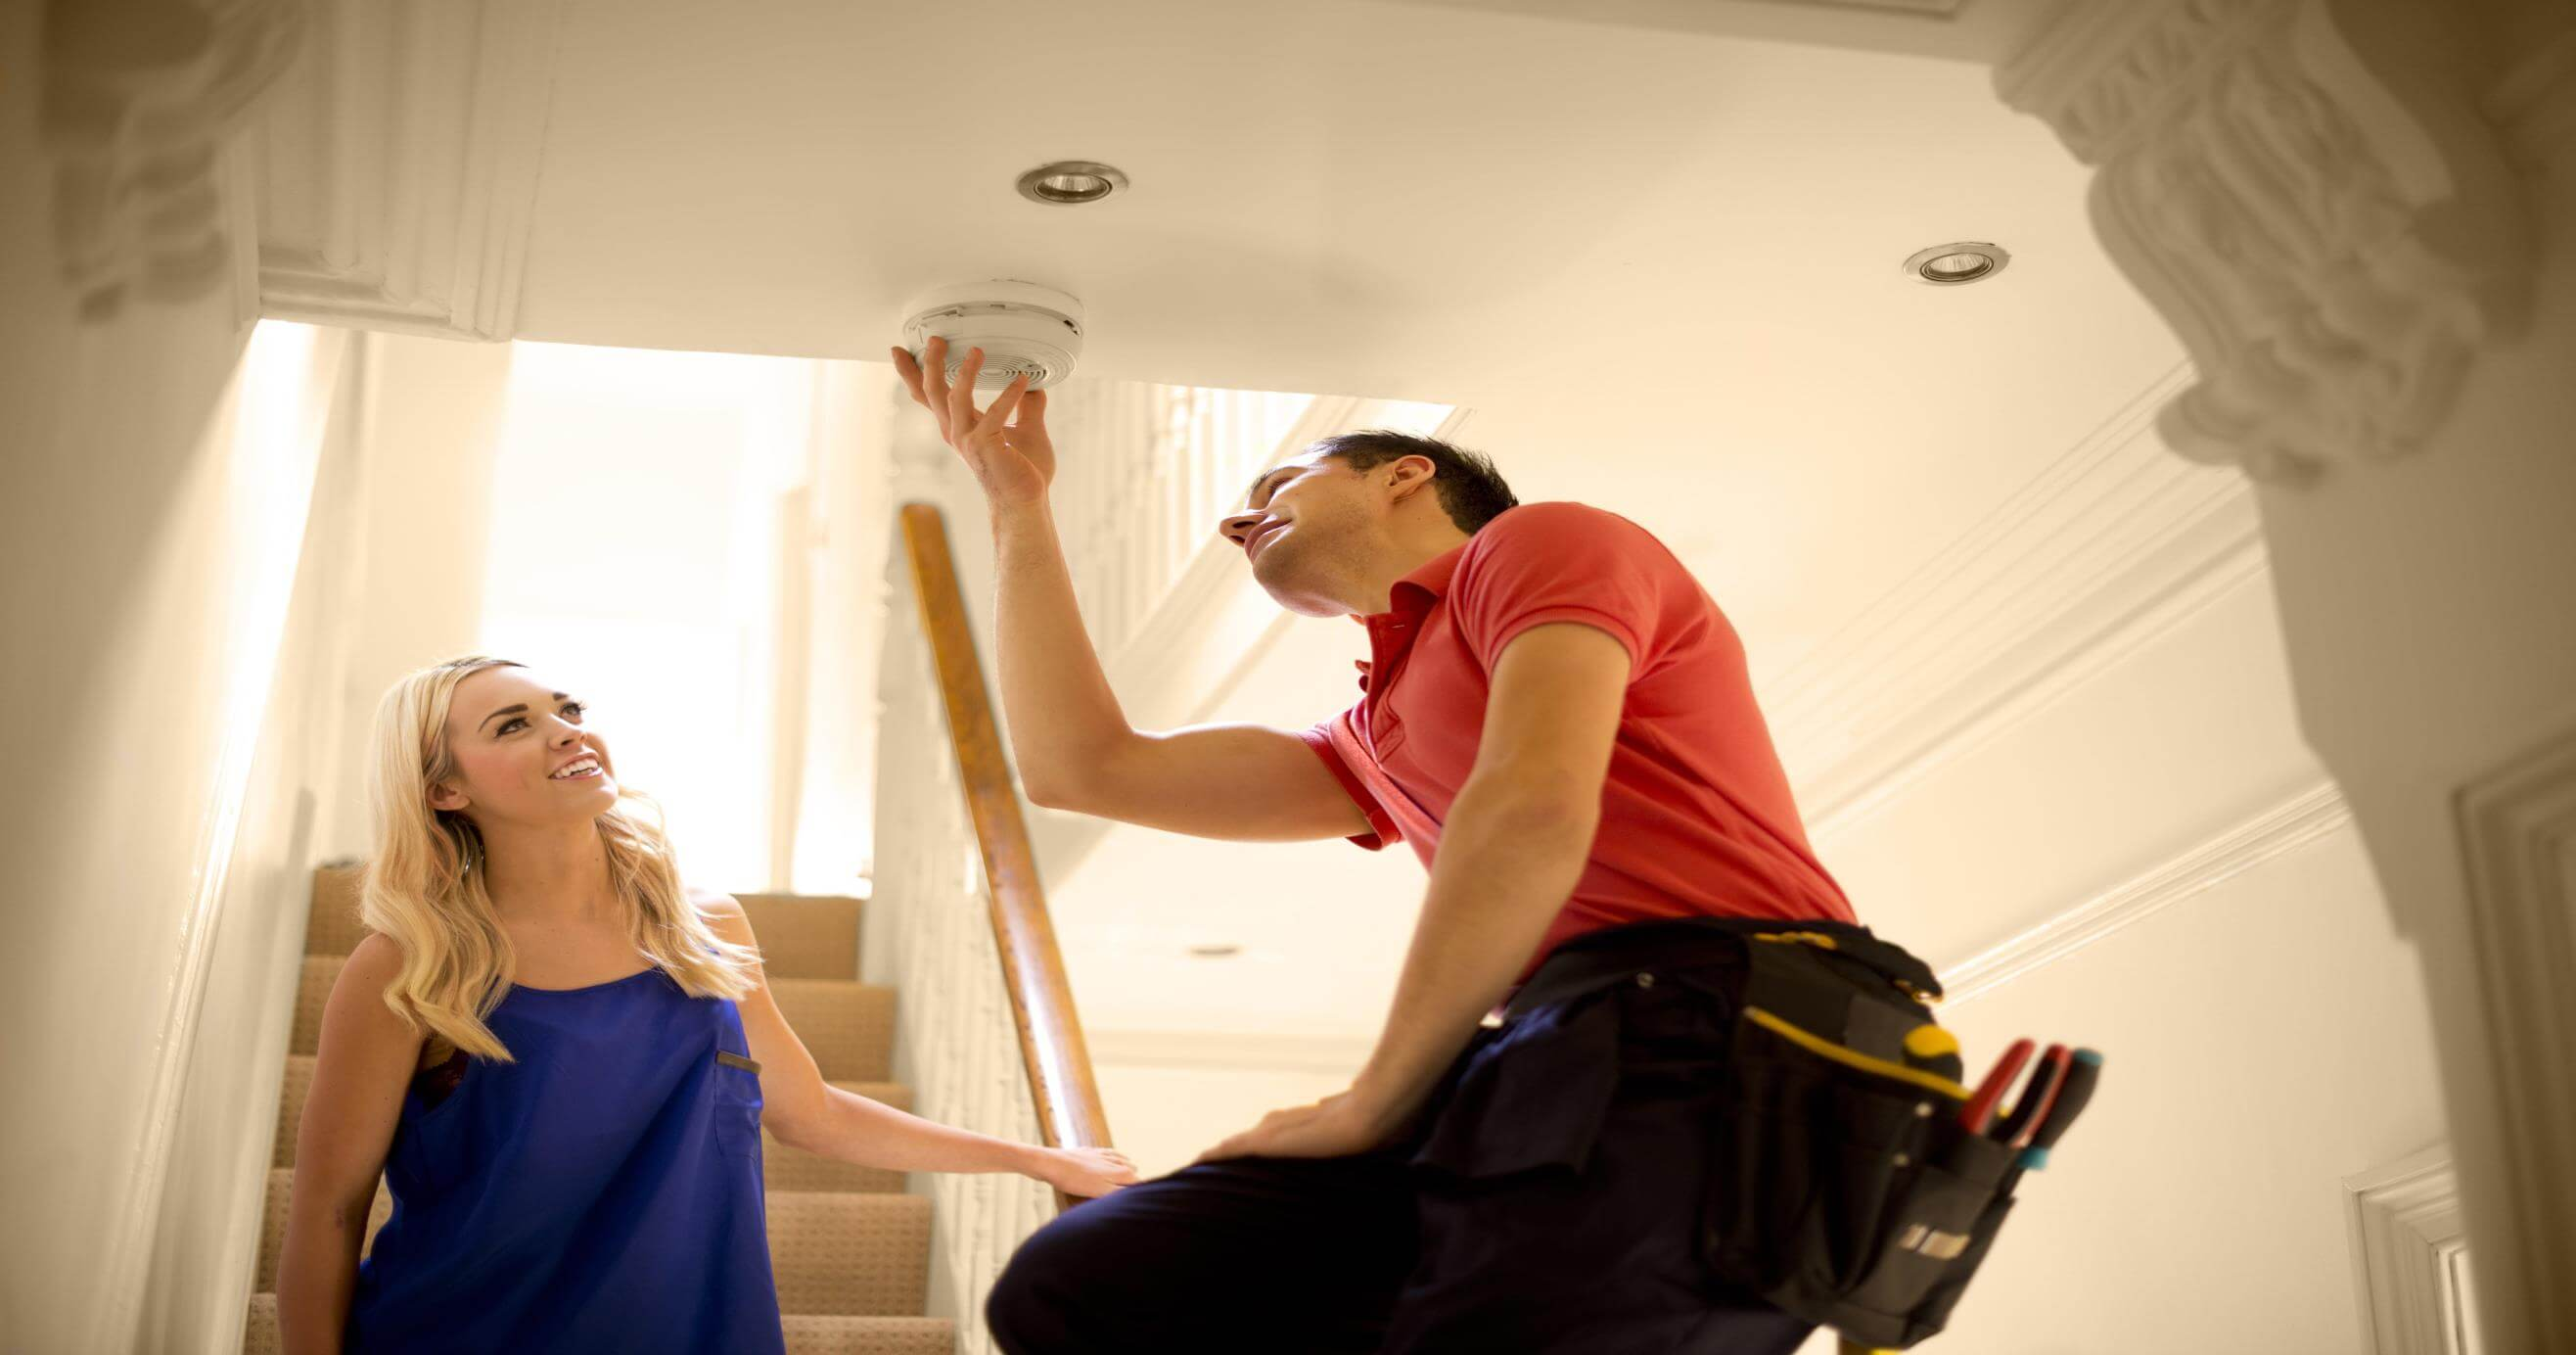 How to Install Carbon Monoxide Detector